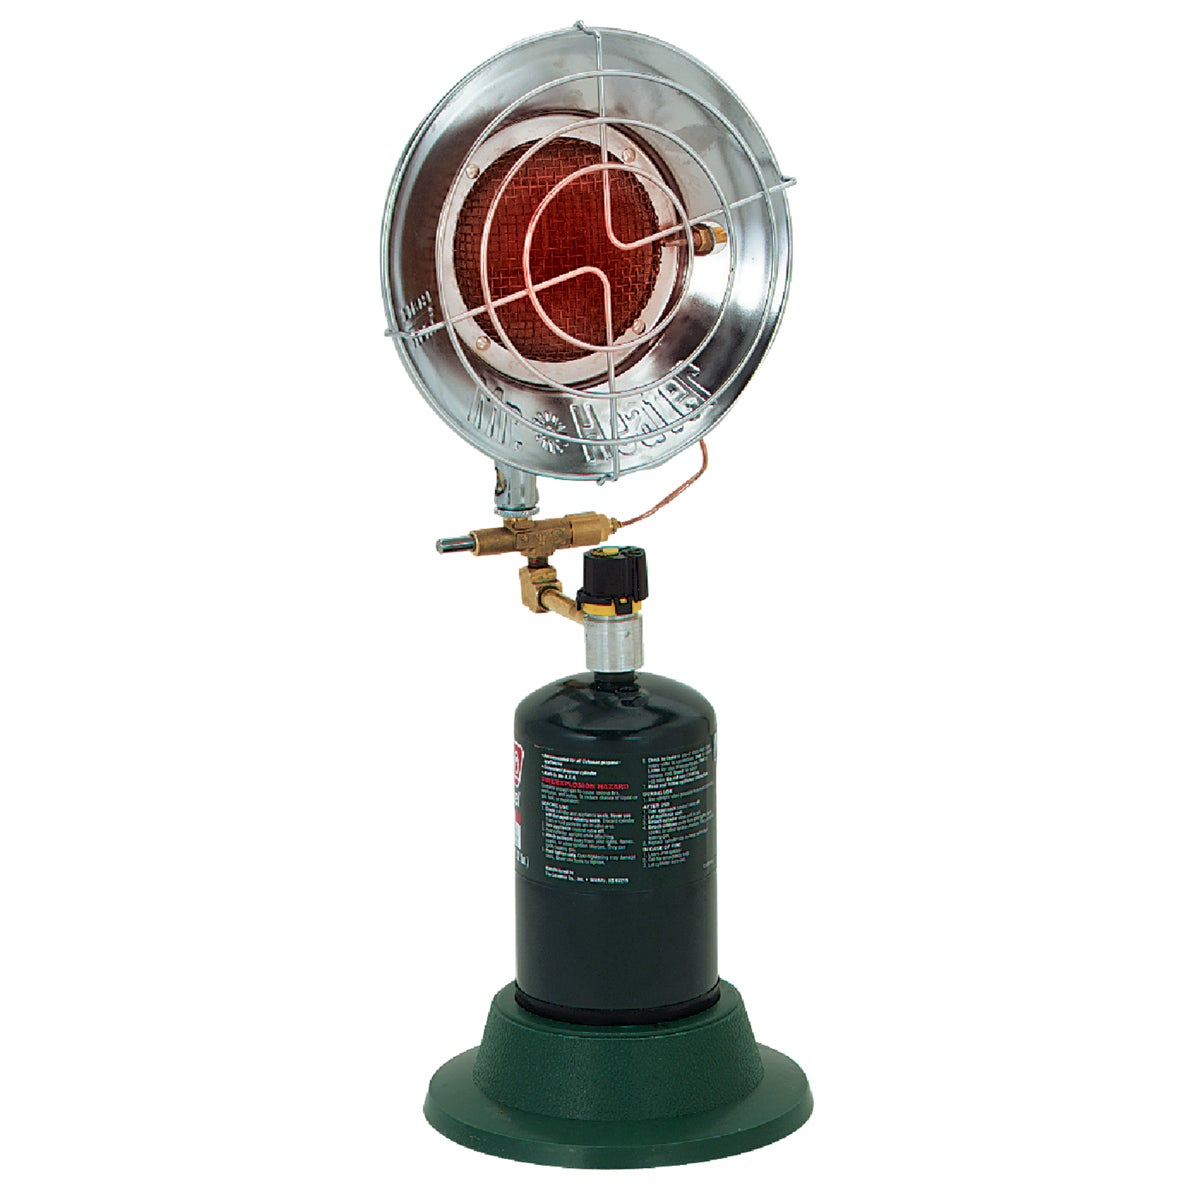 LP GAS RADIANT HEATER - F242200 by Mr Heater Corp